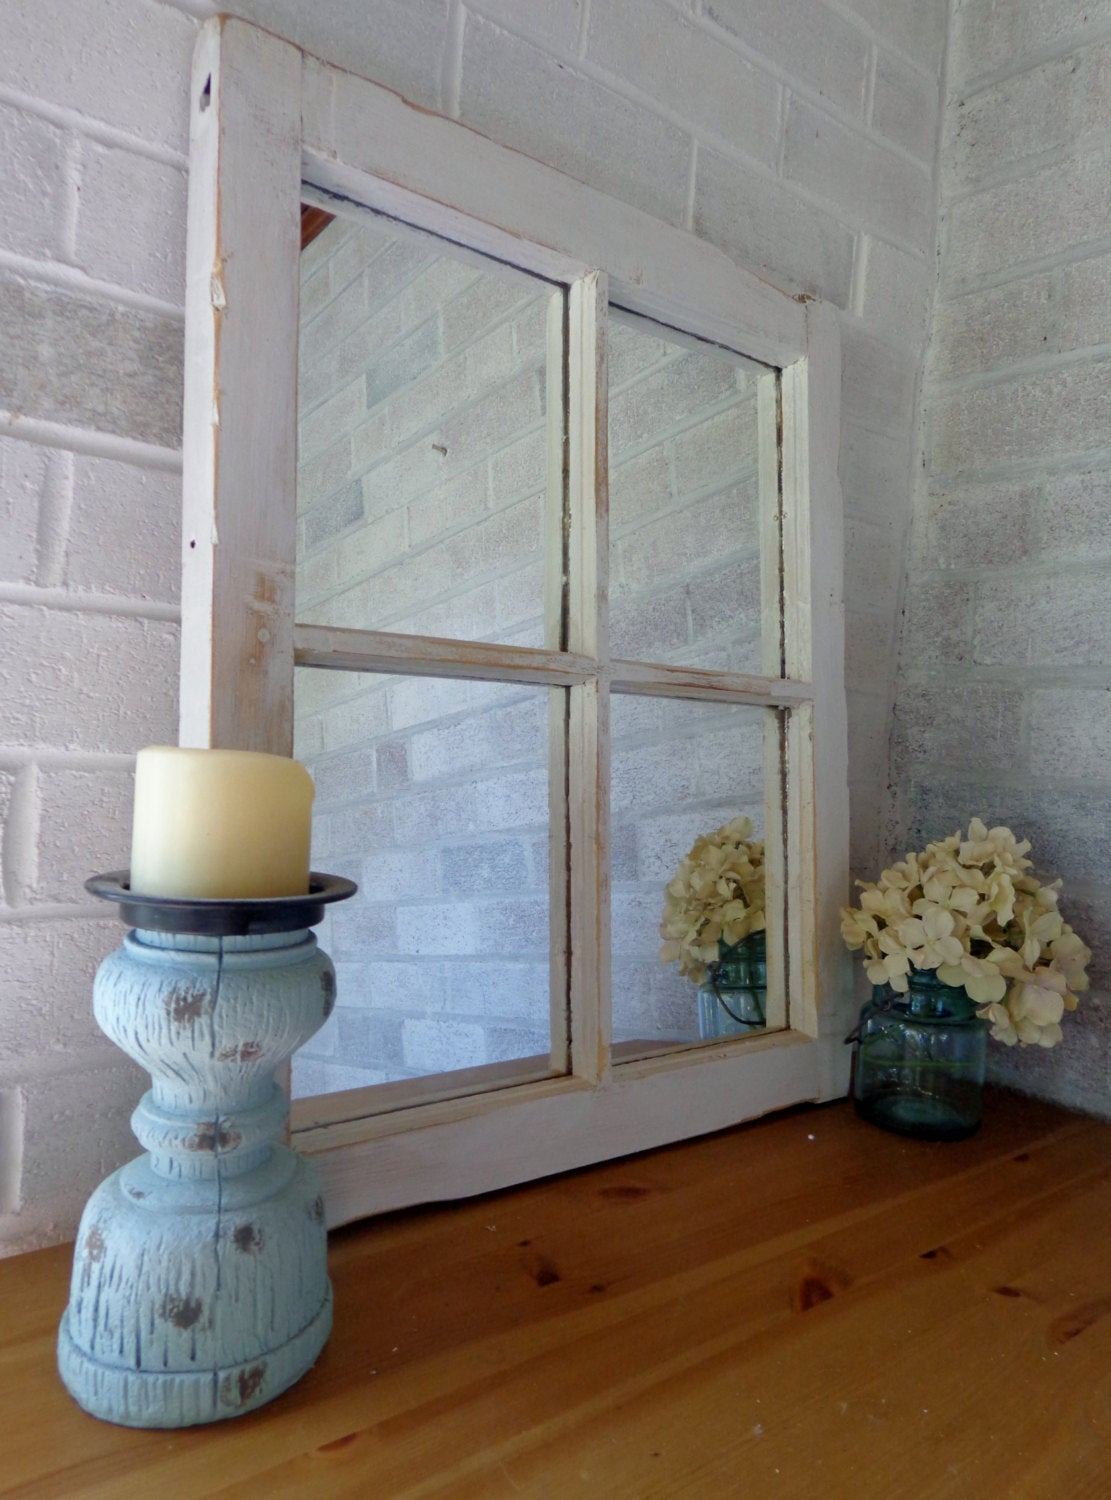 Mirror Wall Decor, Reclaimed Wood Window Mirror – 4 Pane Frame – Decorative Mirror – Vintage Mirror Decor - Renewed Decor & Storage